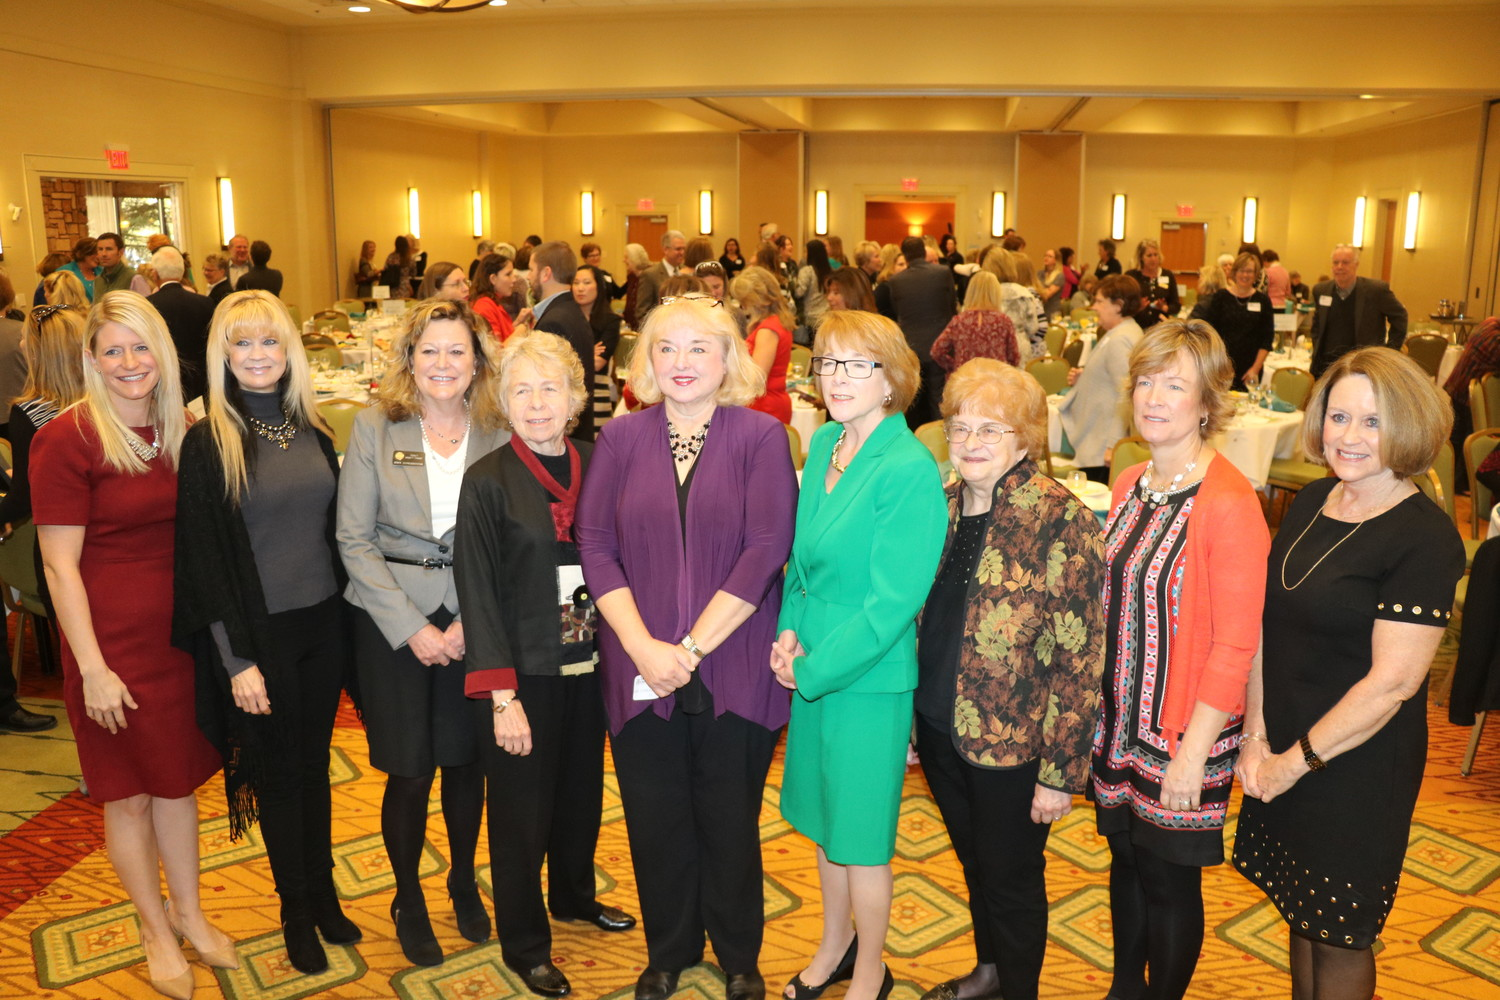 Jennifer Ryan, center, poses for a photo after being honored at the annual Celebrate Women of Jefferson County event on Nov. 17.